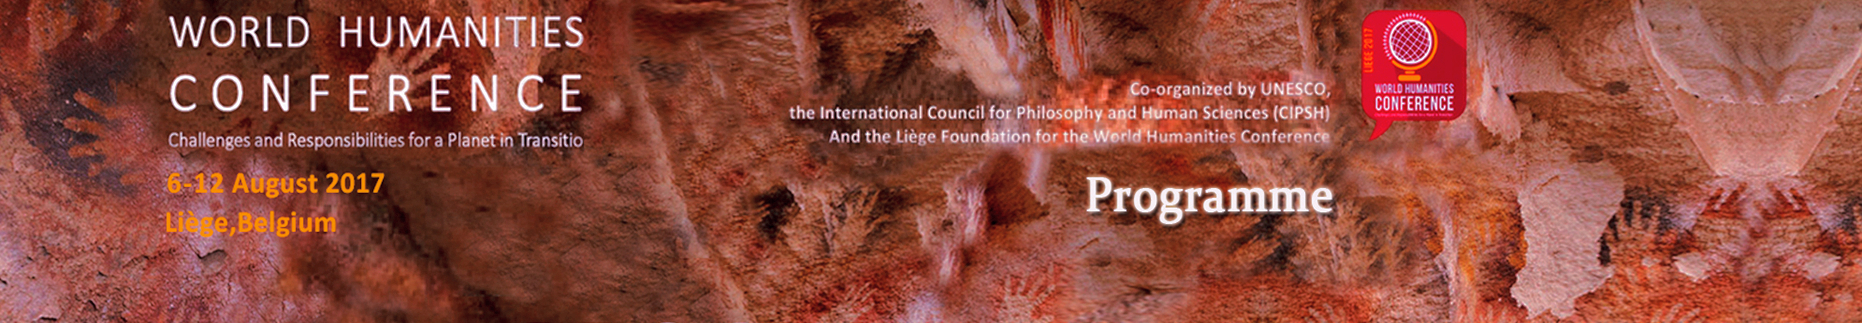 Programme of the World Humanities Conference  http://www.cipsh.net/web/channel-111.htm